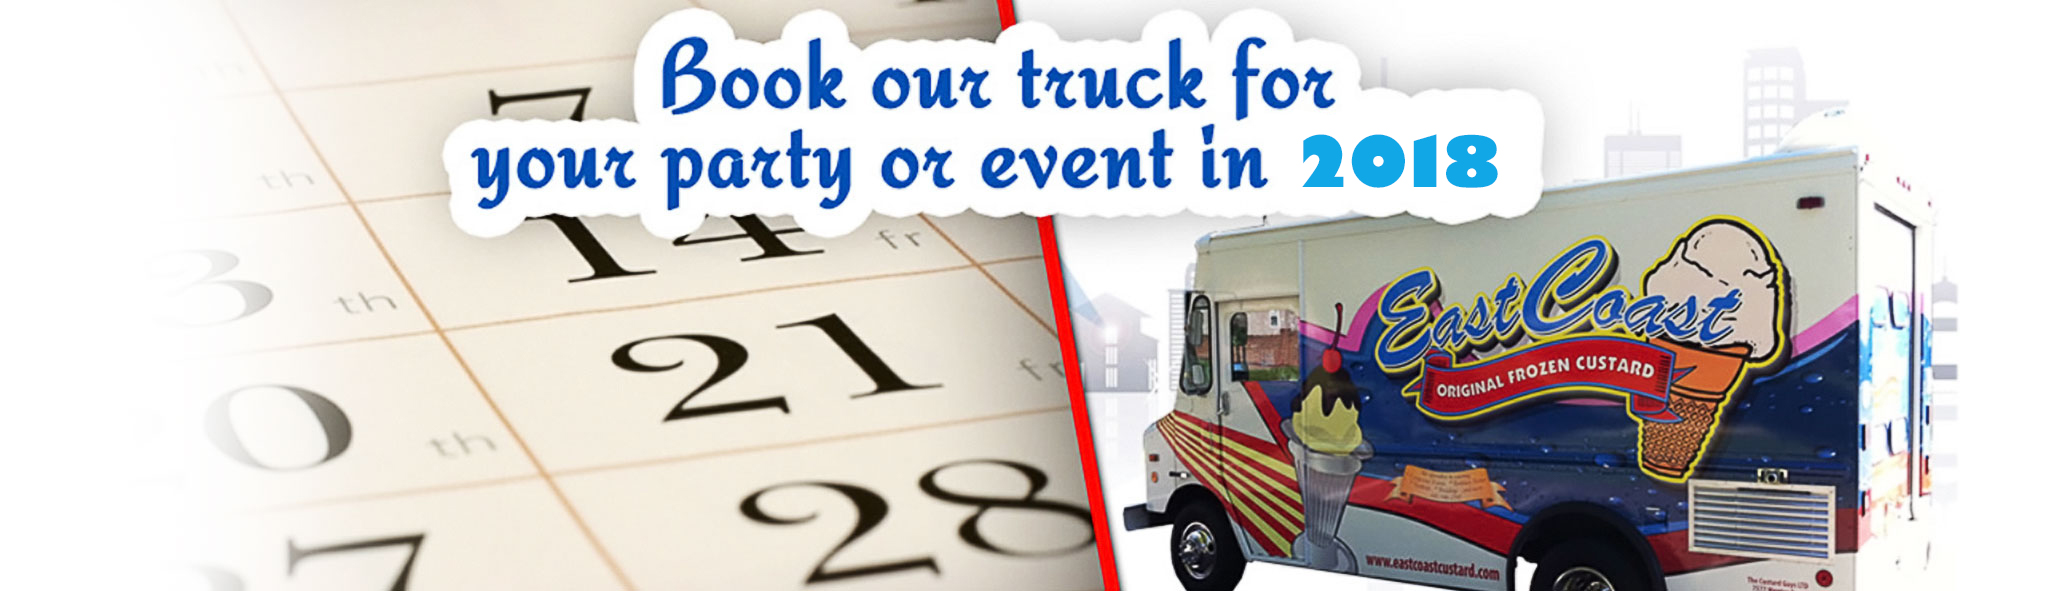 Book our truck for your party event in 2018